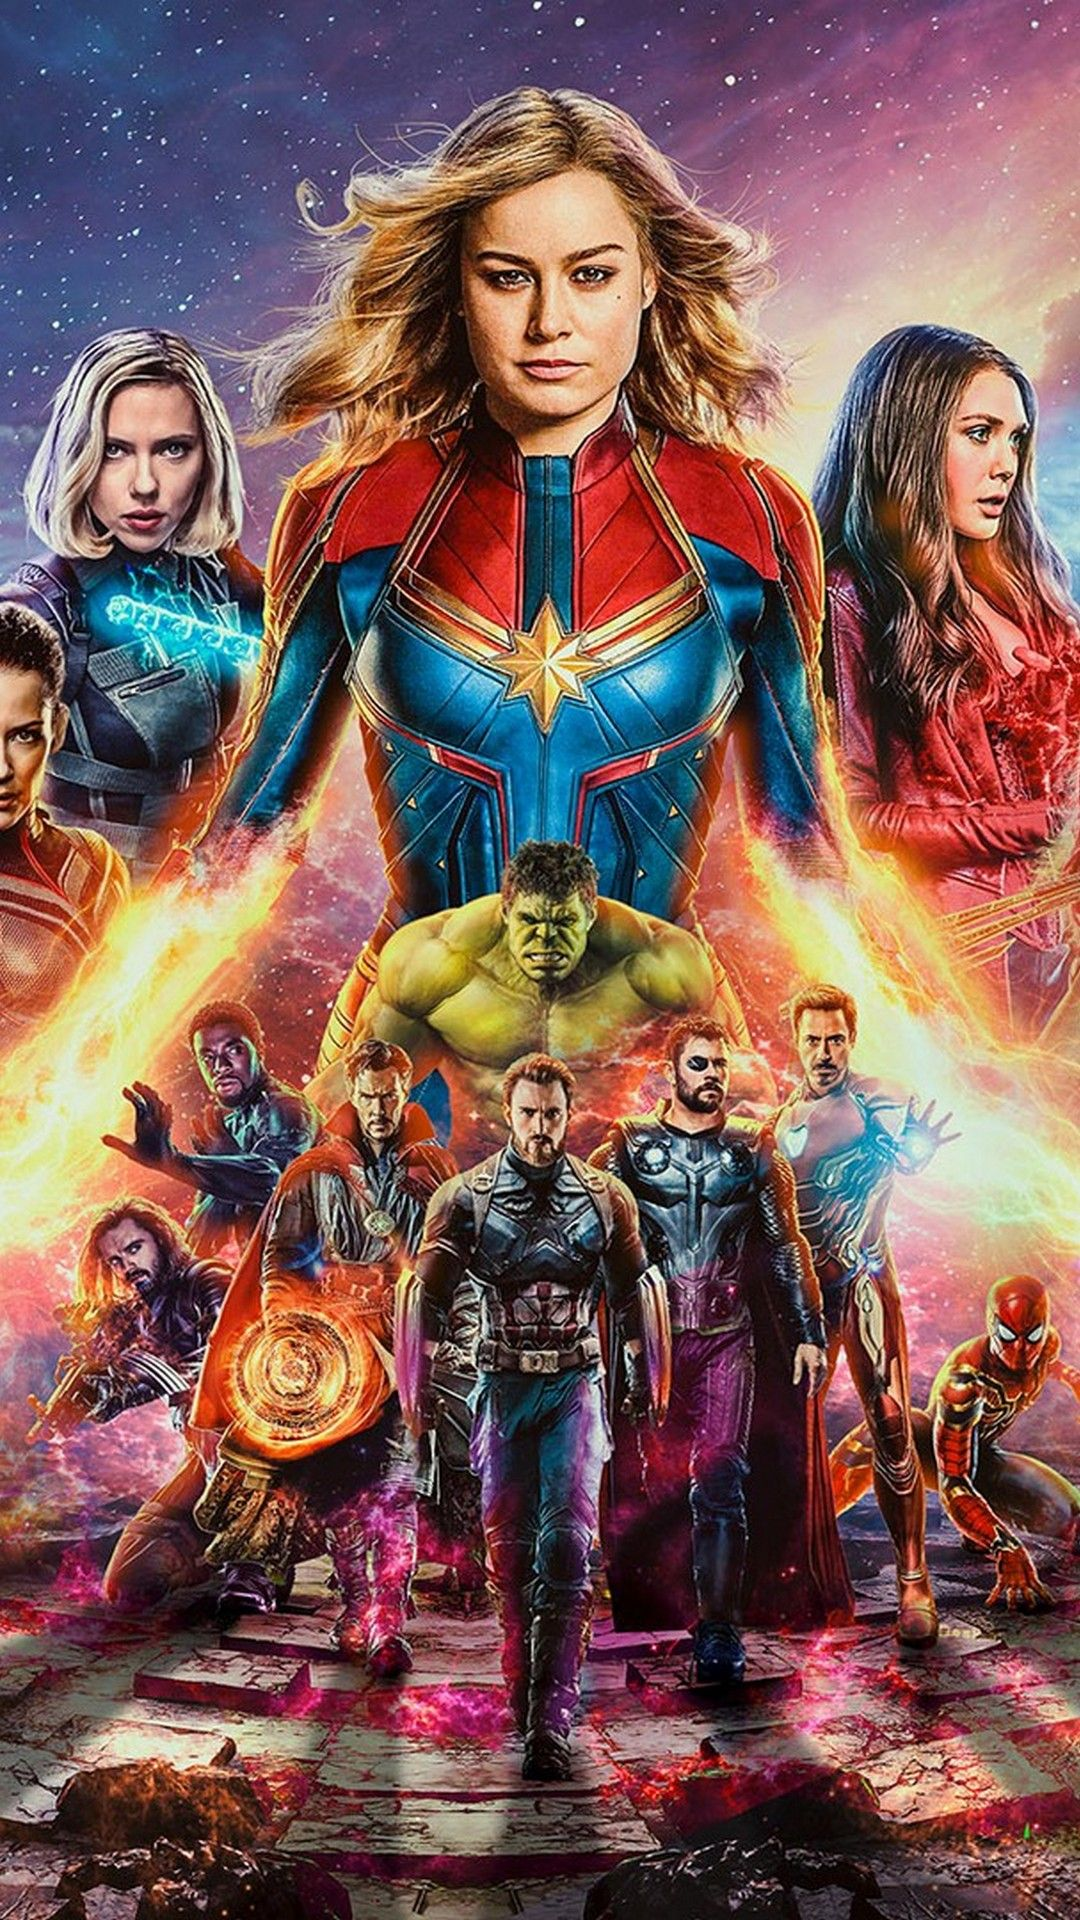 Avengers Endgame Iphone Wallpaper Marvel Cinematic